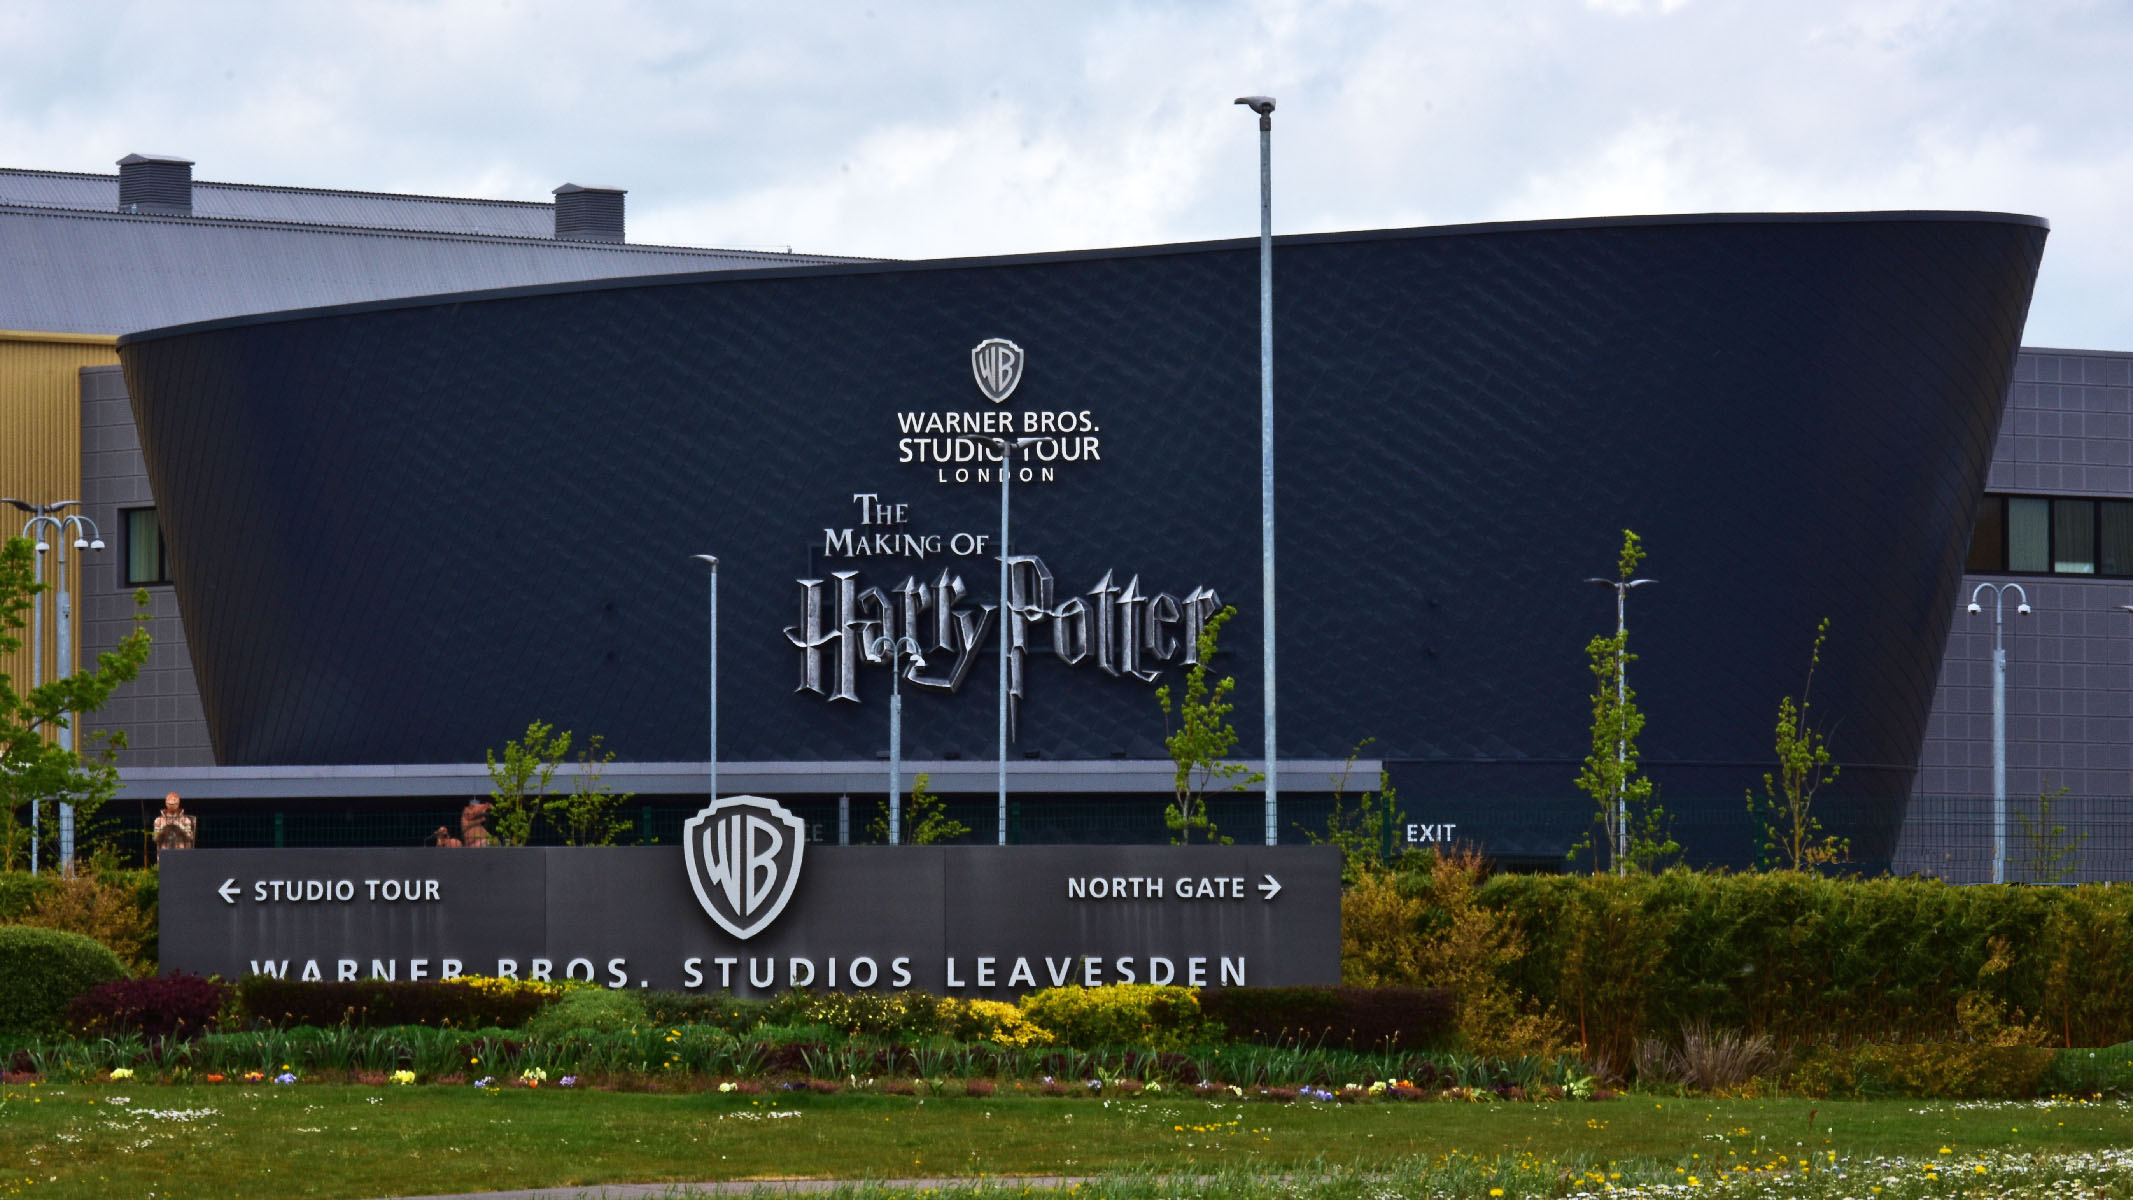 WARNER BROS. STUDIO TOUR LONDON 2018 HARRY POTTER